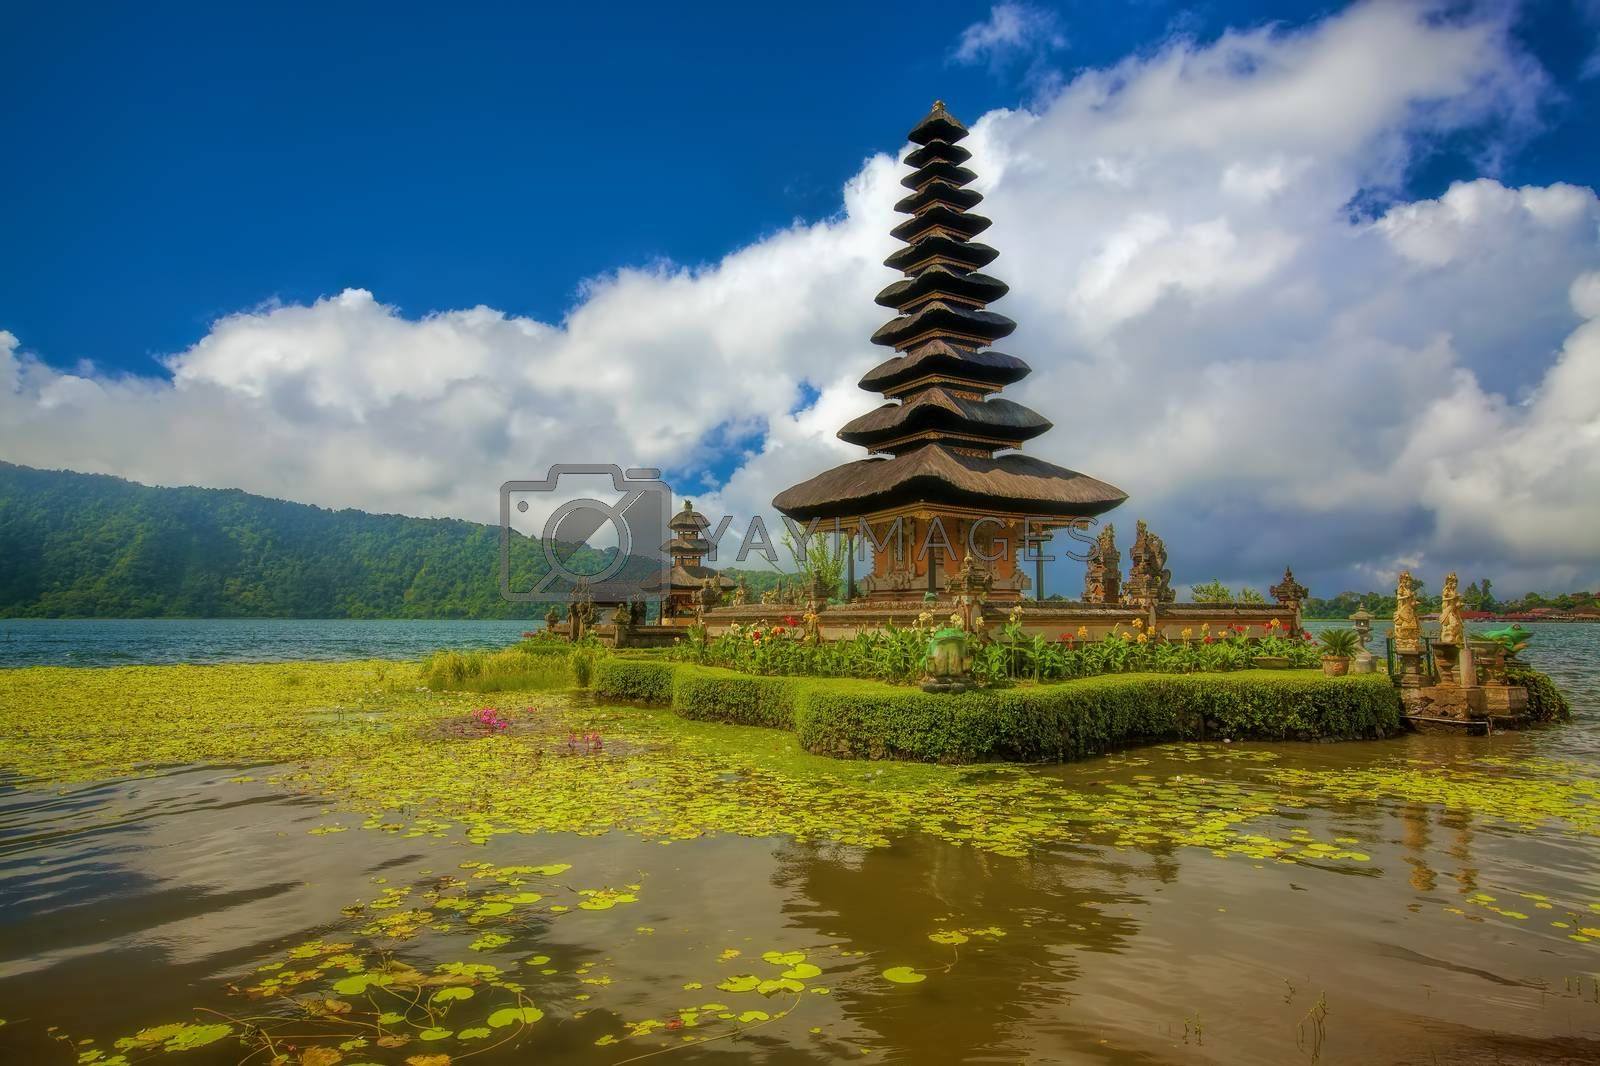 Royalty free image of Ulun Danu Temple by kjorgen